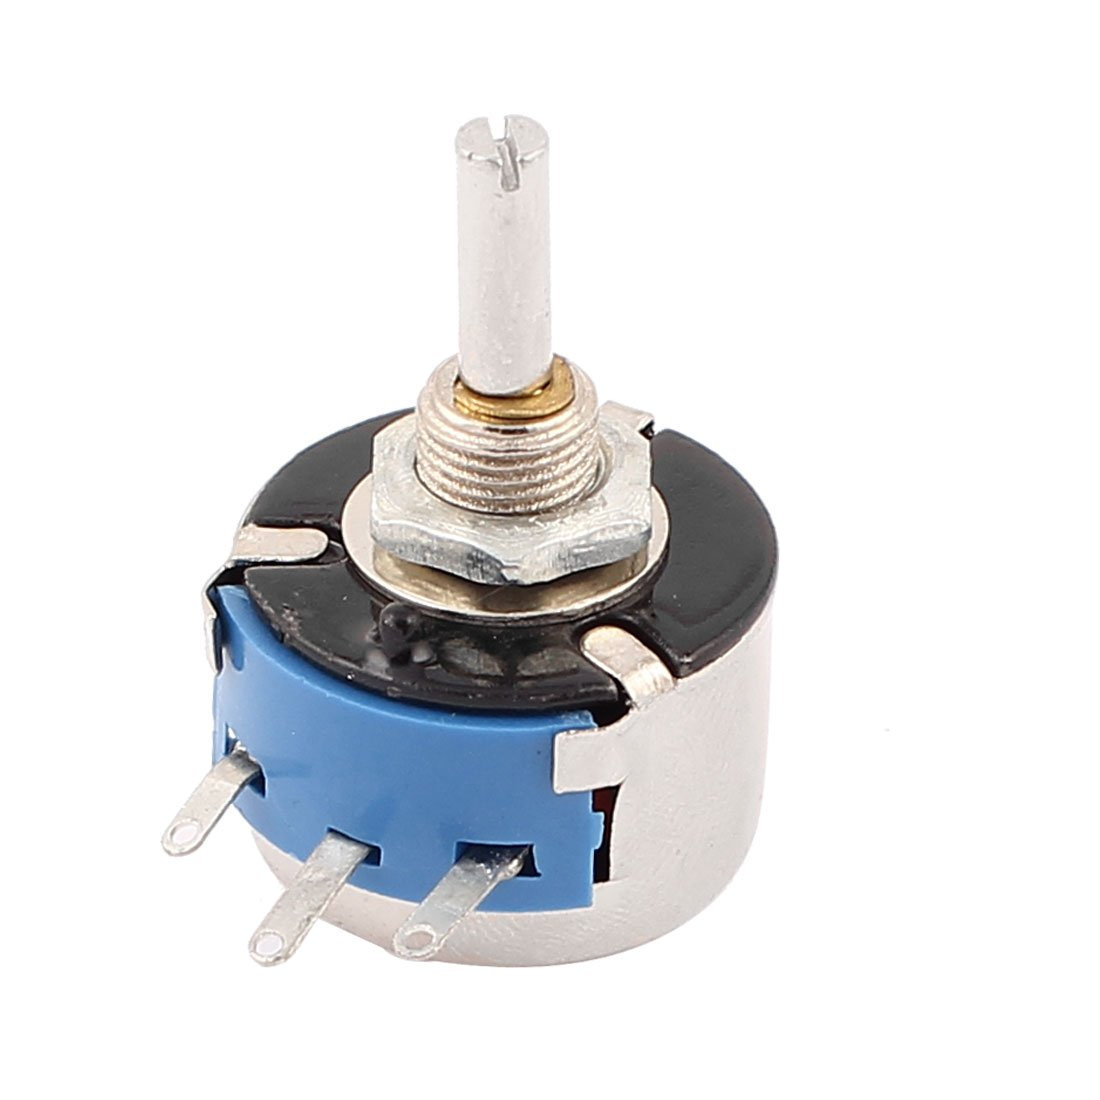 Uxcell a15082600ux0074 4 mm Diameter Shaft 4.7K Ohm Single Turn Wire Wound Potentiometer, 3W